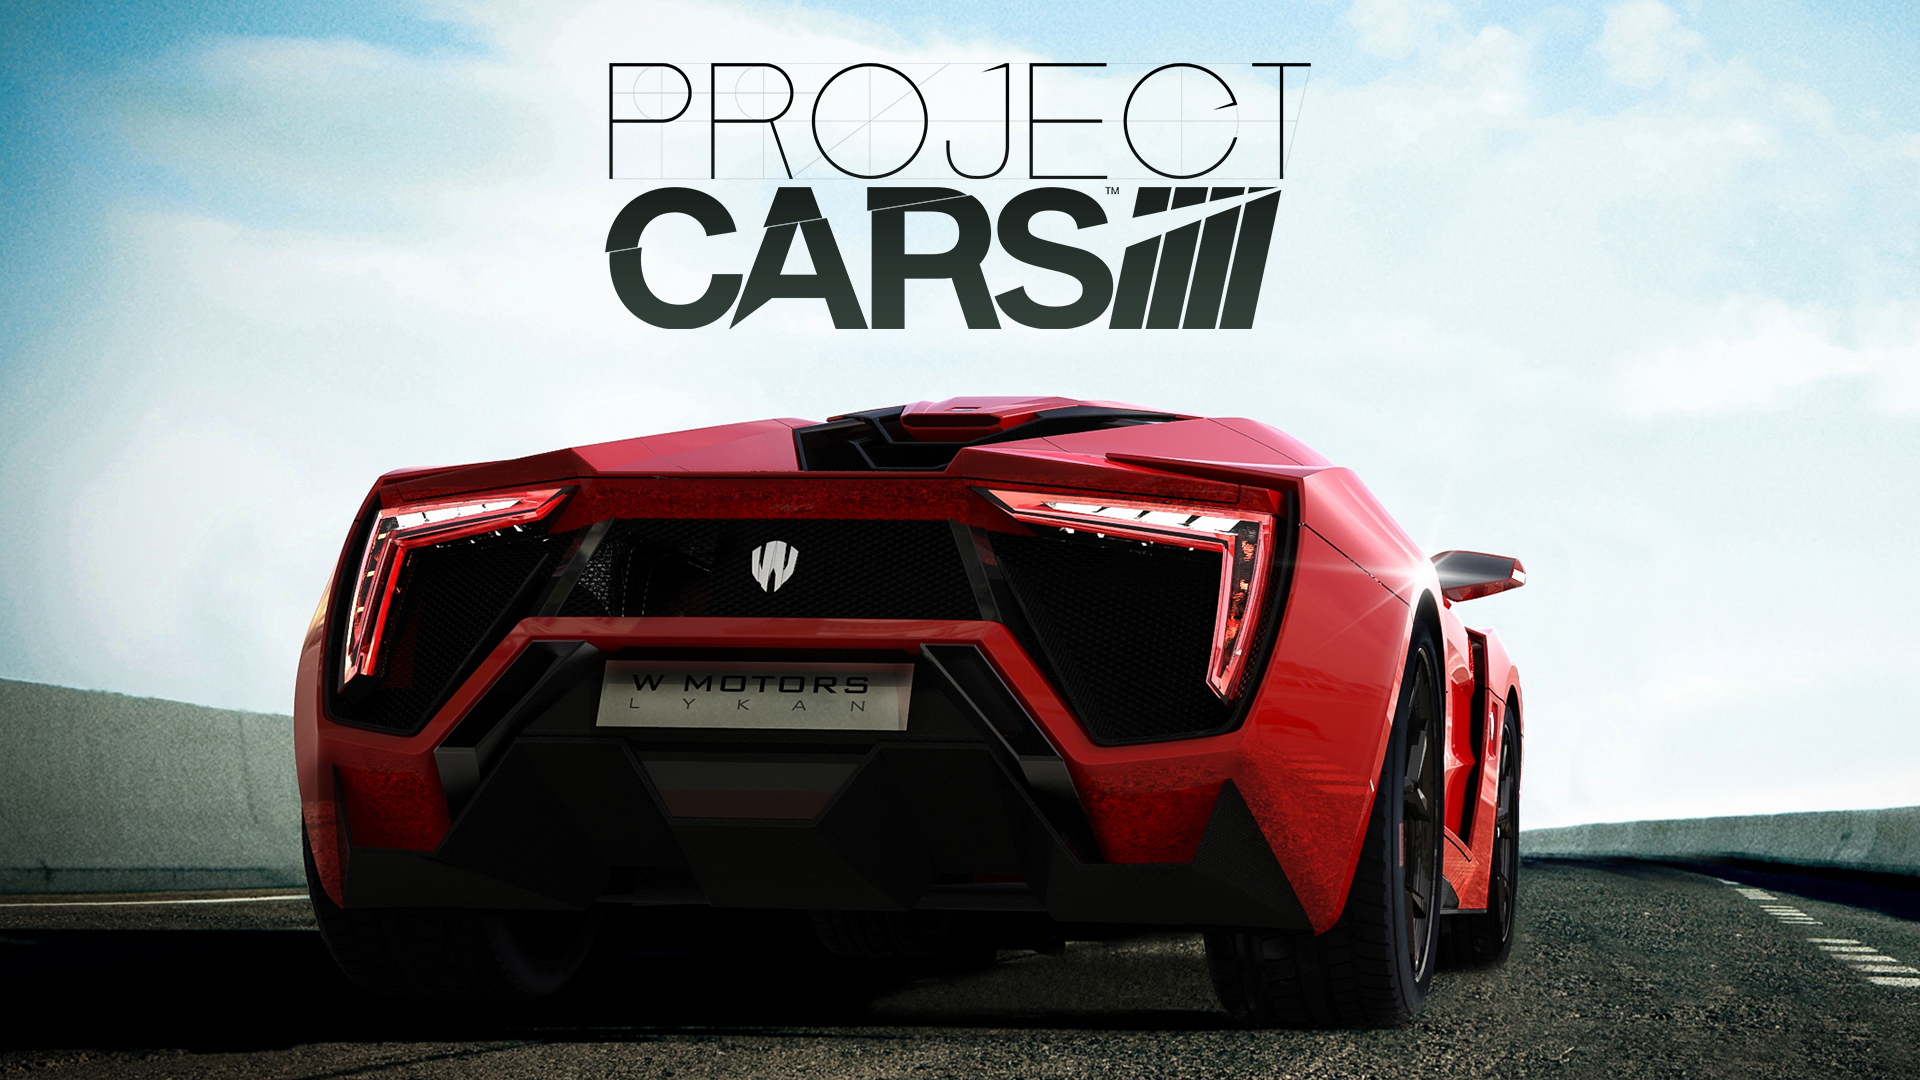 Project CARS Will Let You Drive Furious 7's Lykan Hypersport